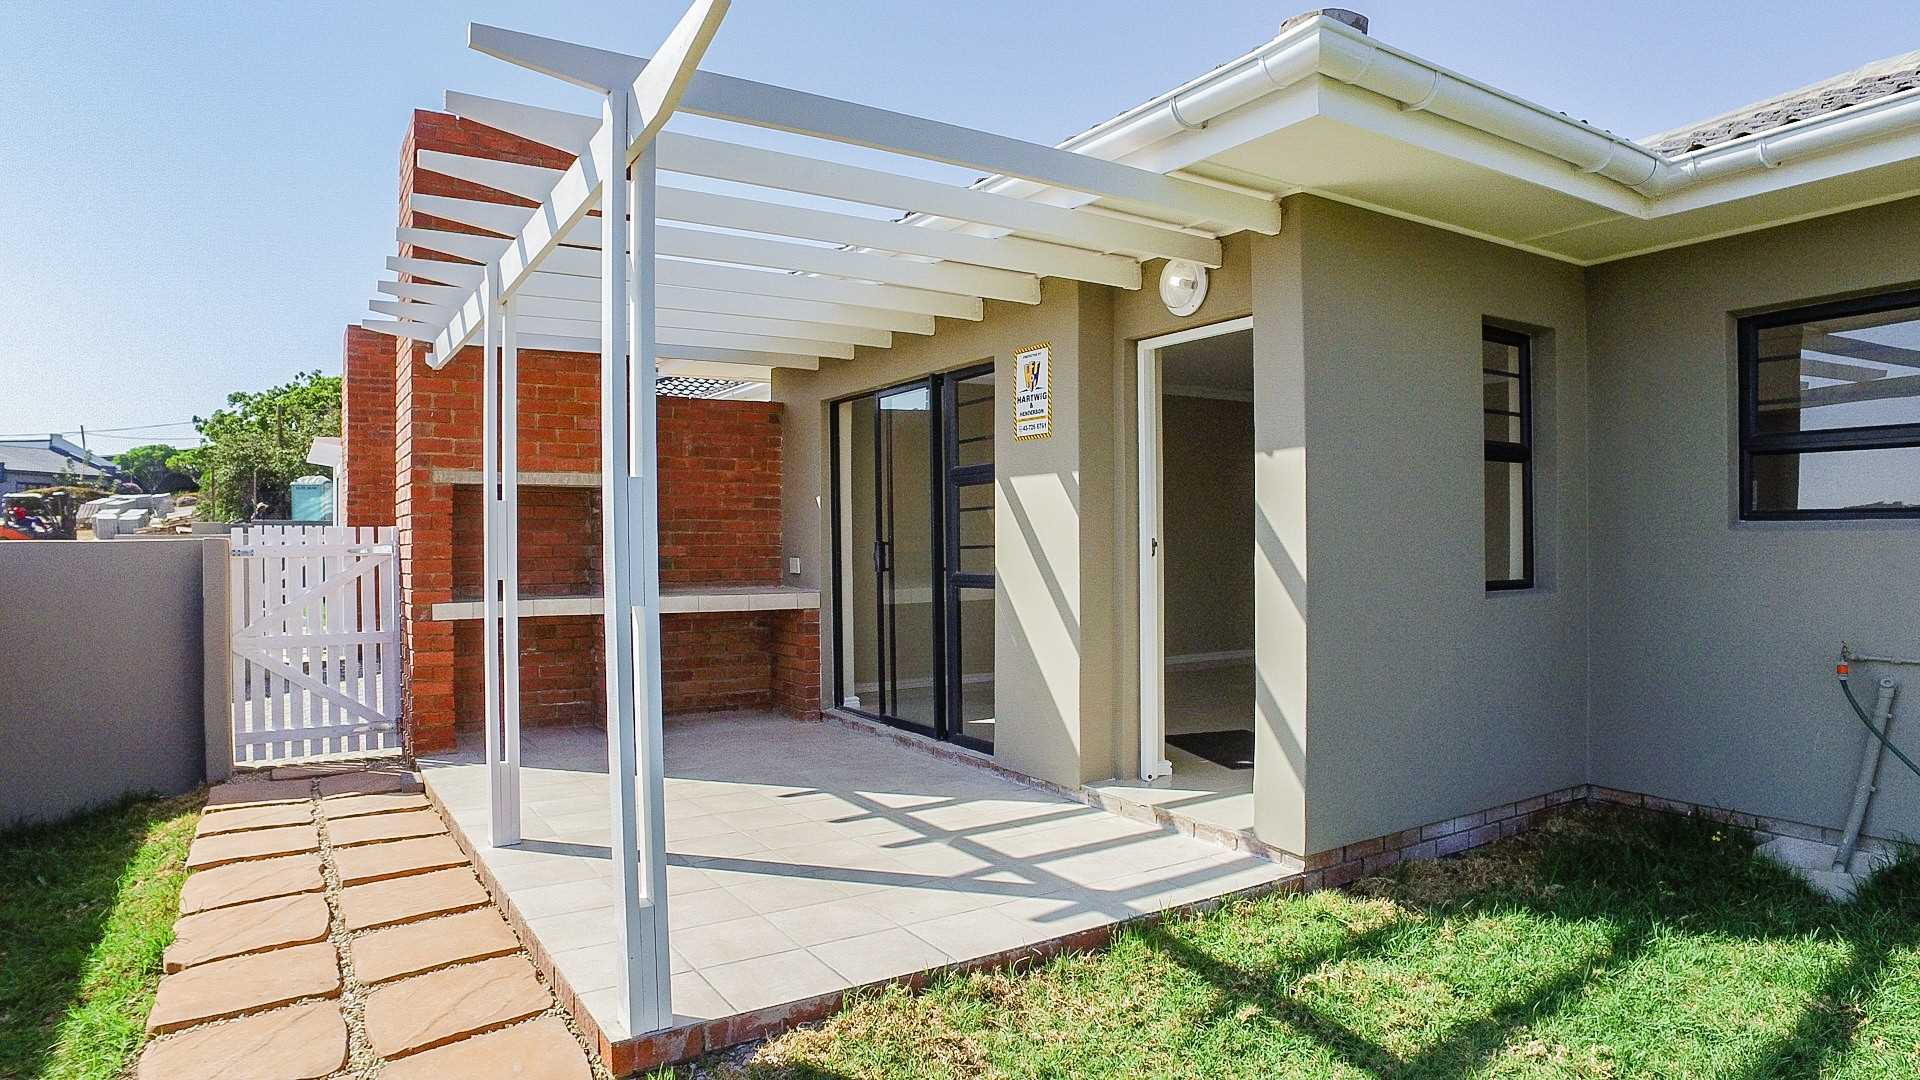 Townhouse for sale in Beacon Bay, East London, South Africa.  Harcourts Cornerstone.